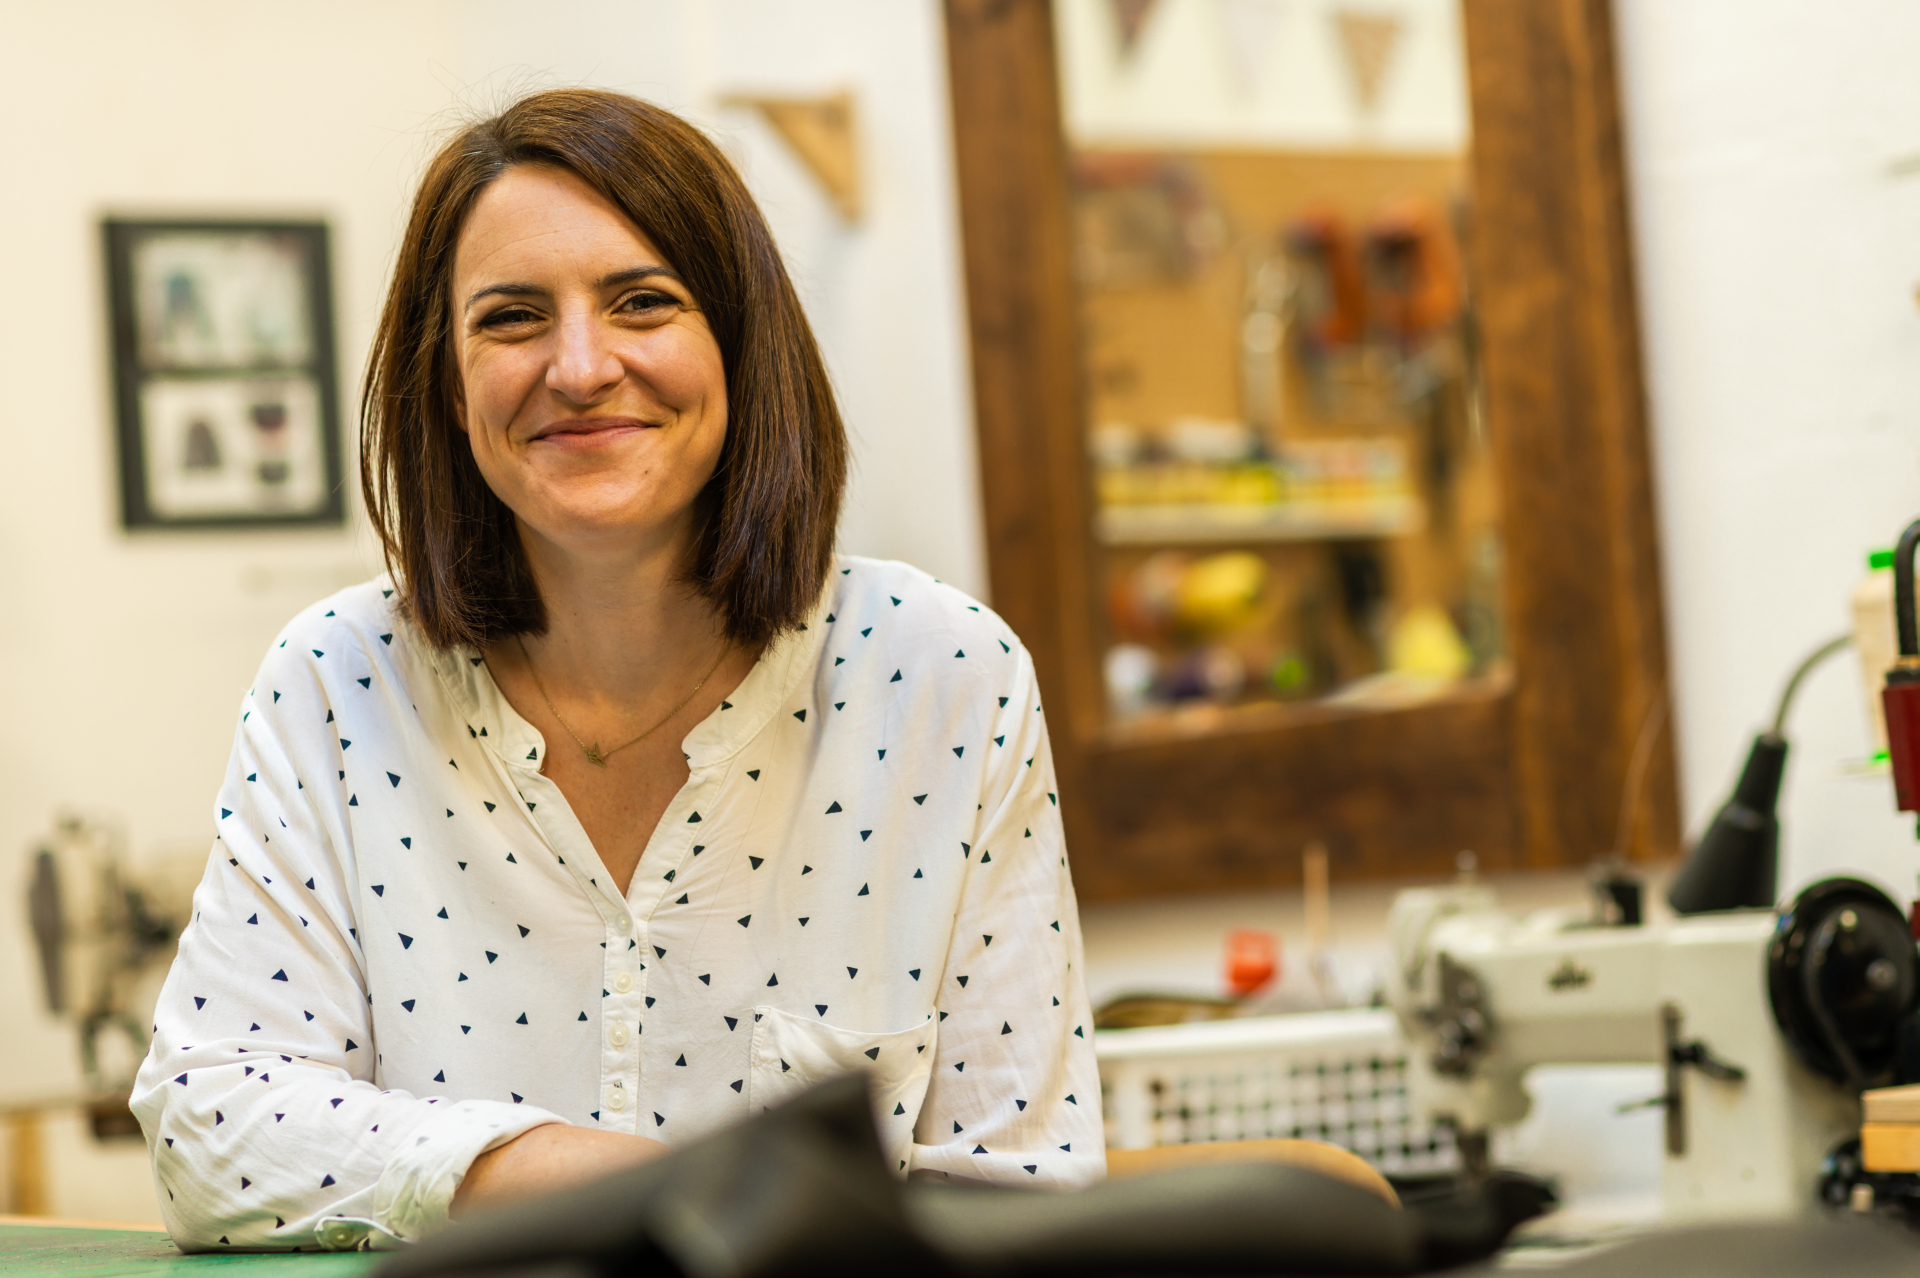 Rosanna Clare Leather Workshops in Cranleigh